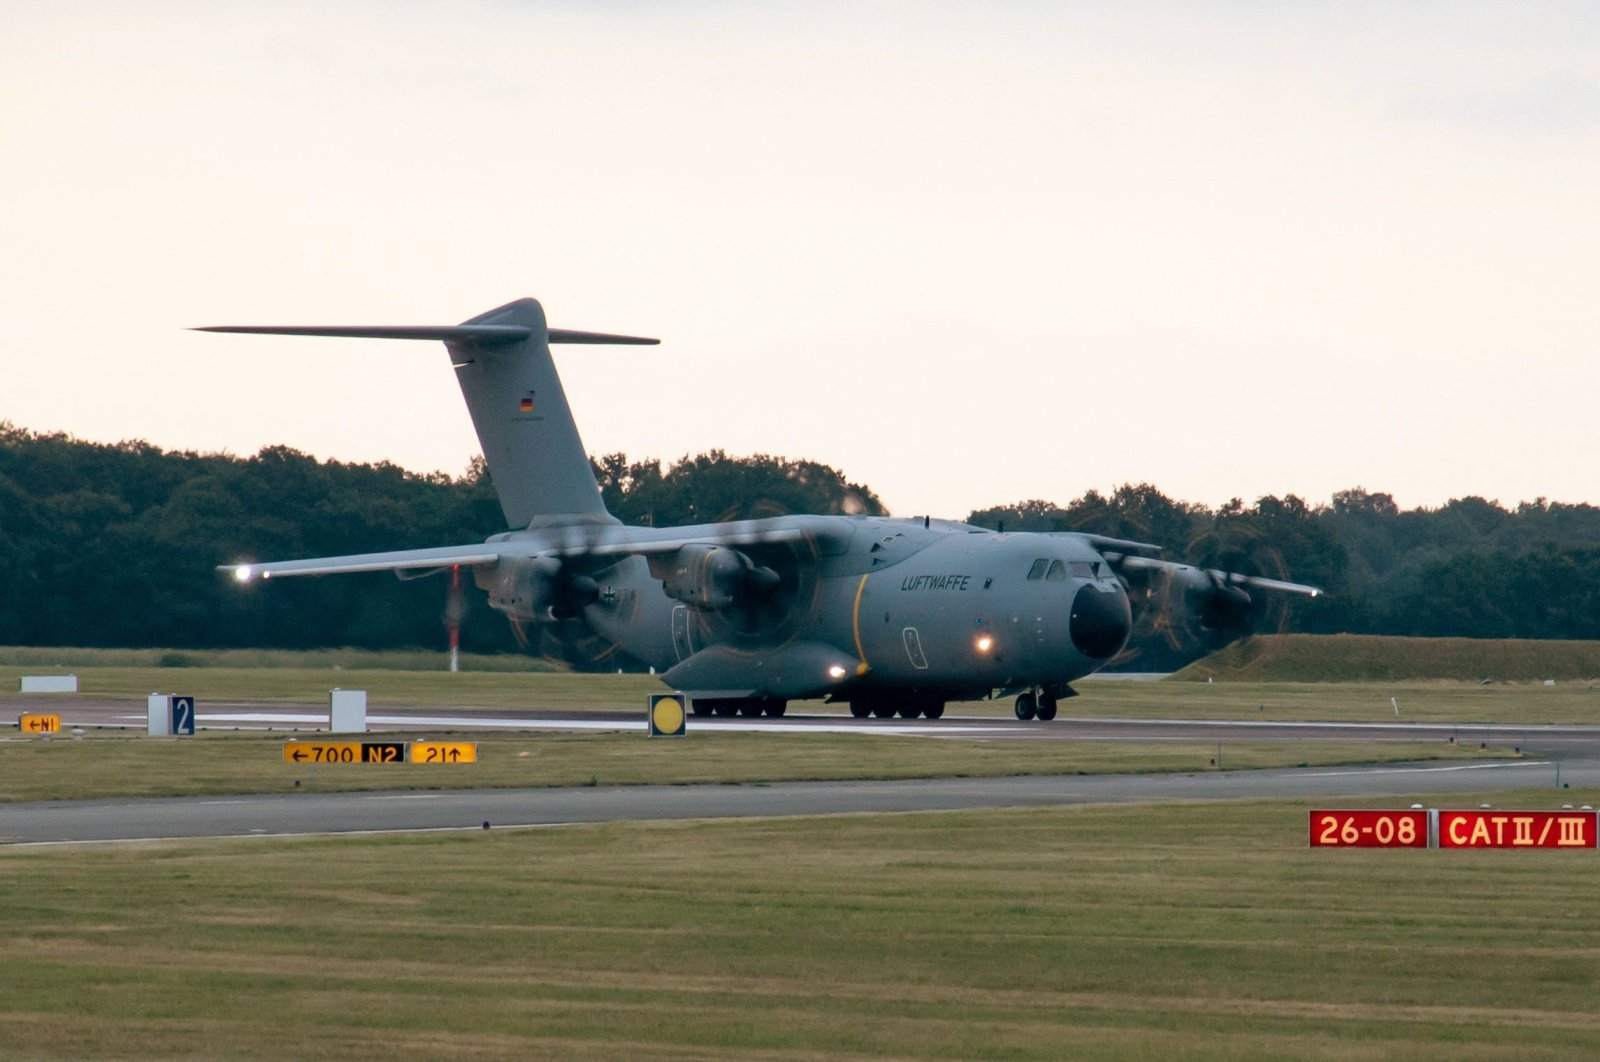 In this handout photo, an Airbus A400 transport aircraft of the German Air Force takes off on a runway at the Wunstorf Air Base near Hanover, northern Germany, Aug. 16, 2021. (Bundeswehr via AFP)